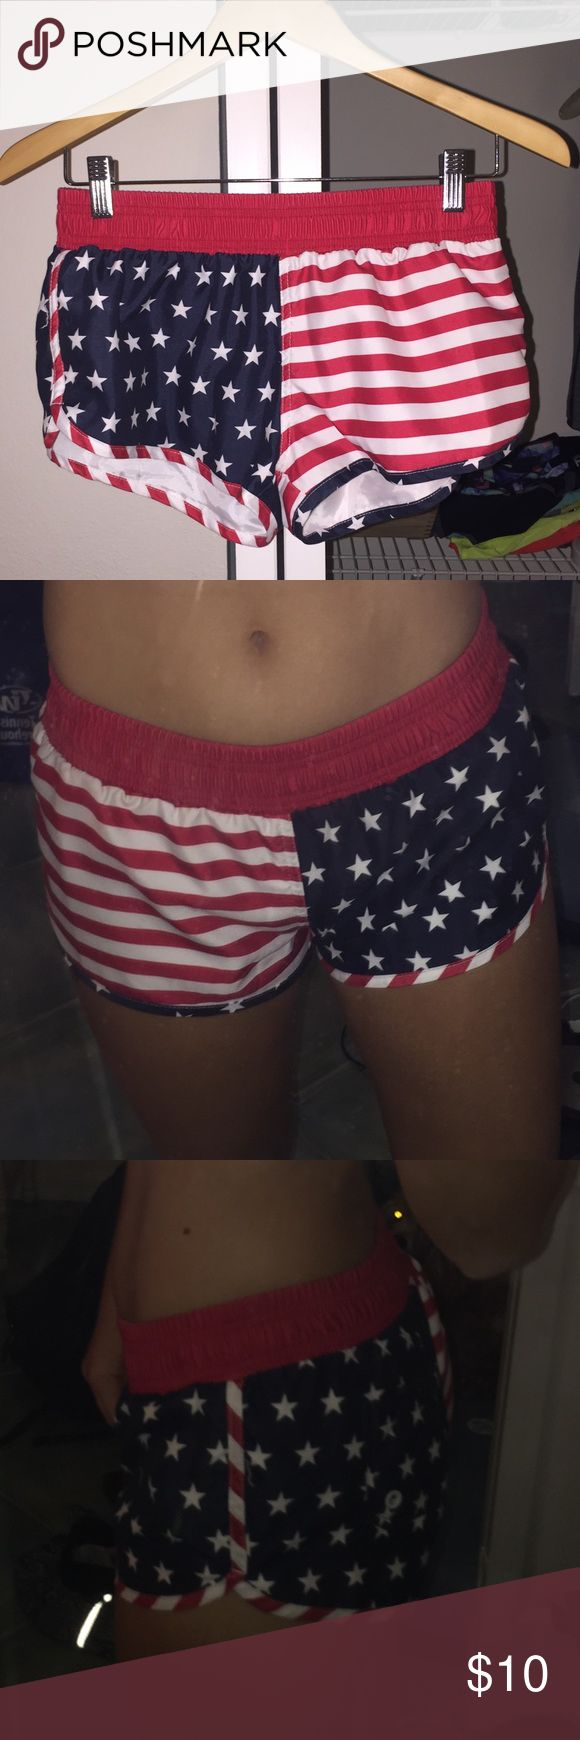 American Flag Shorts (Chubbies Knockoffs) American Flag print athletic style shorts. Brand new condition, pocket in back. Shorts